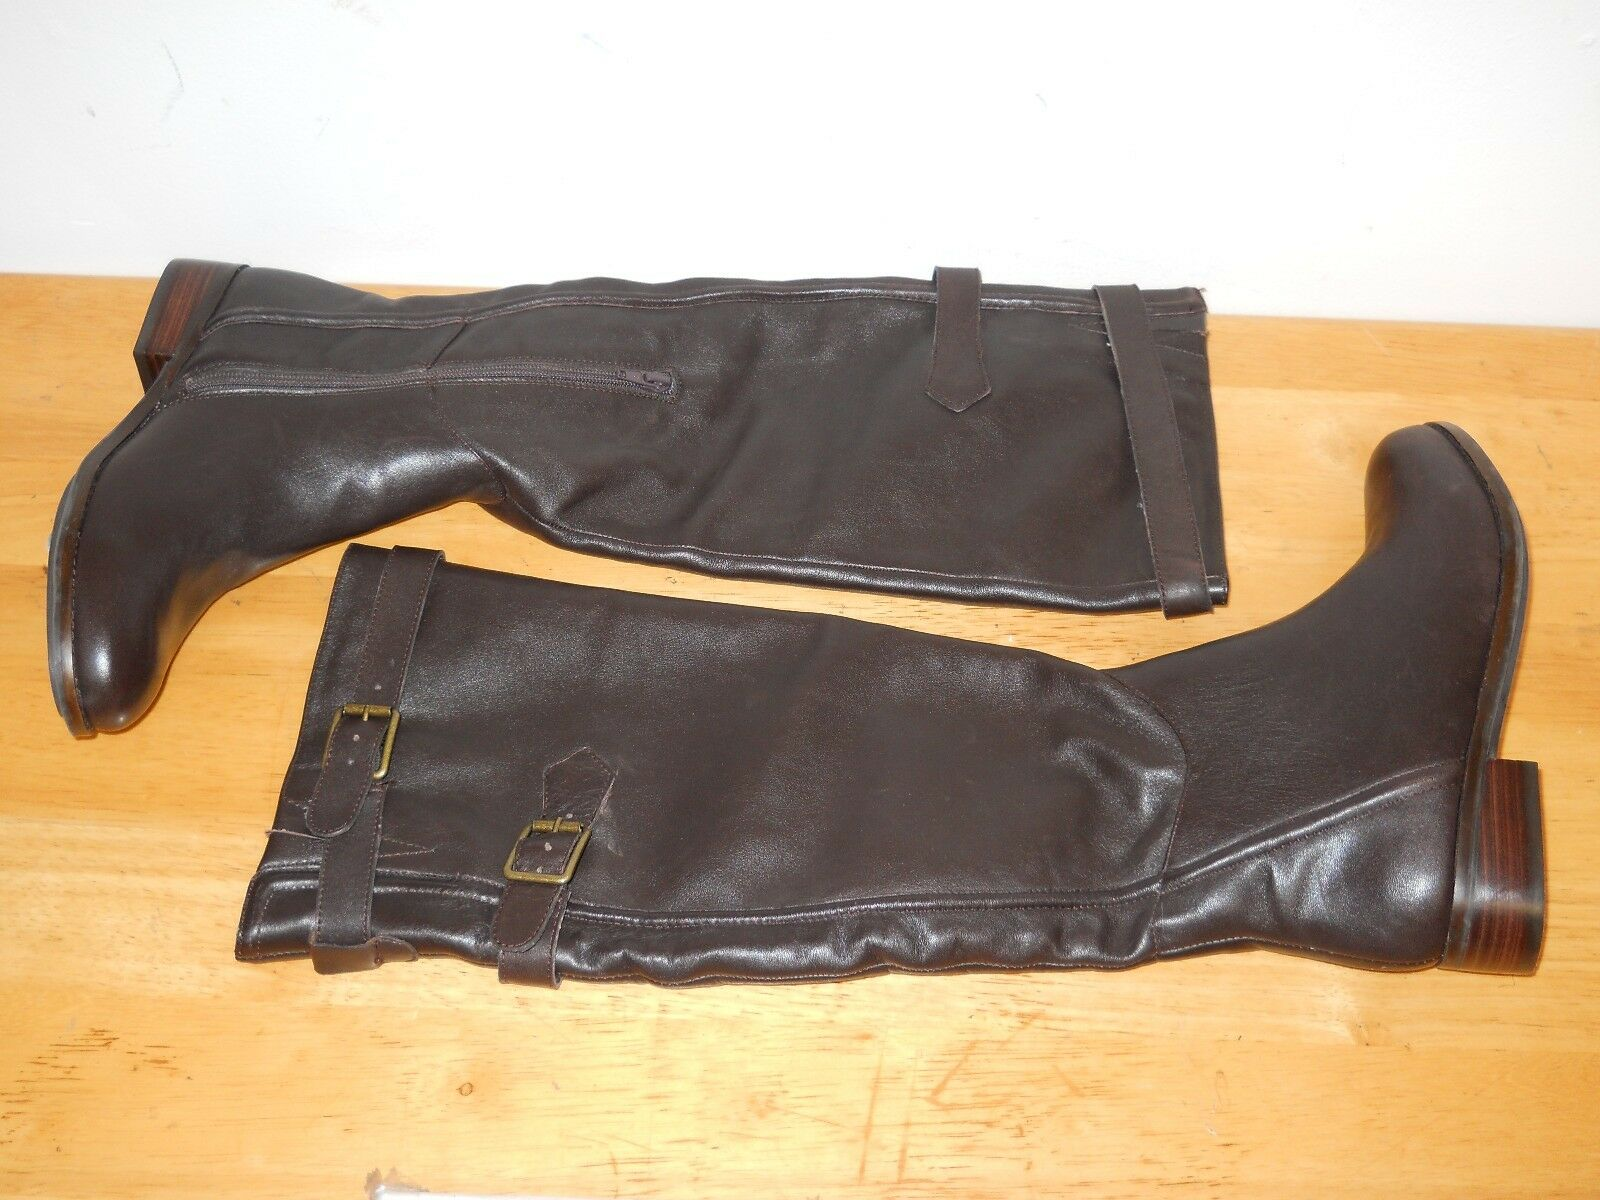 Reba New Womens Stand Dark Brown Leather Boots 6.5 M Shoes NWOB